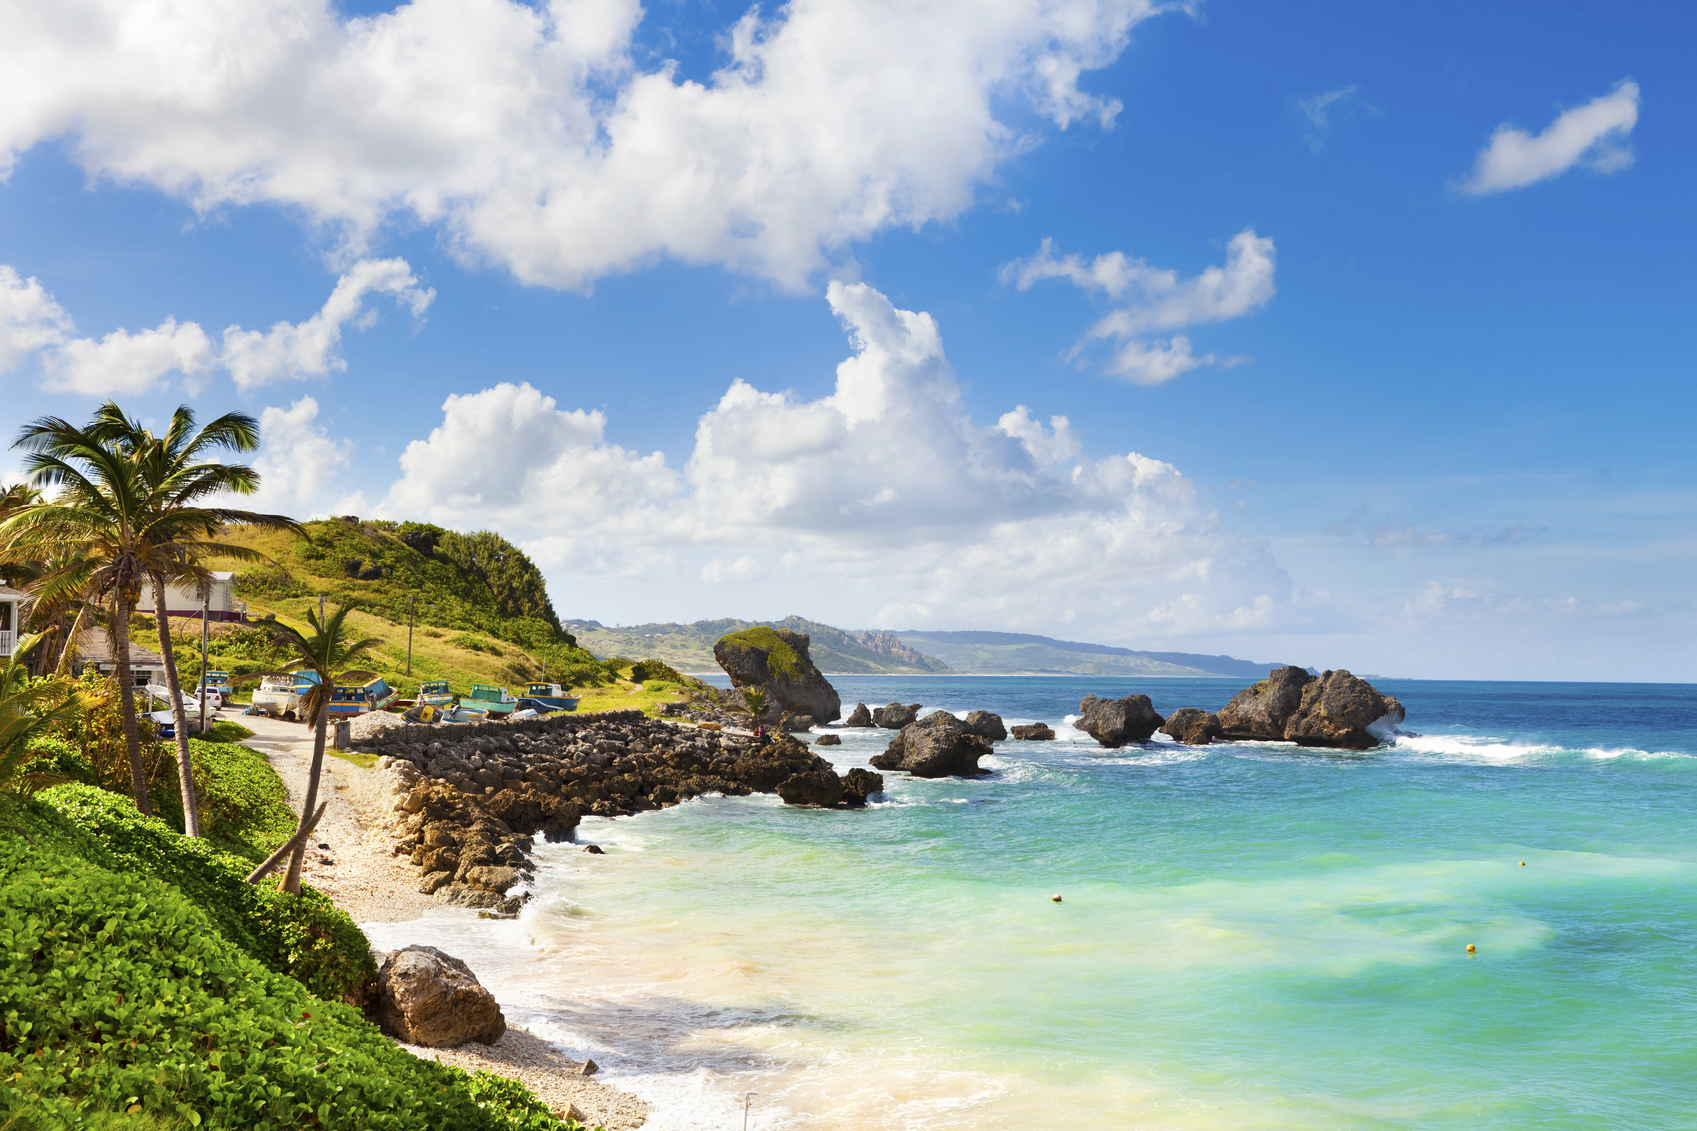 Bathsheba, East coast of Barbados, Lesser Antilles.